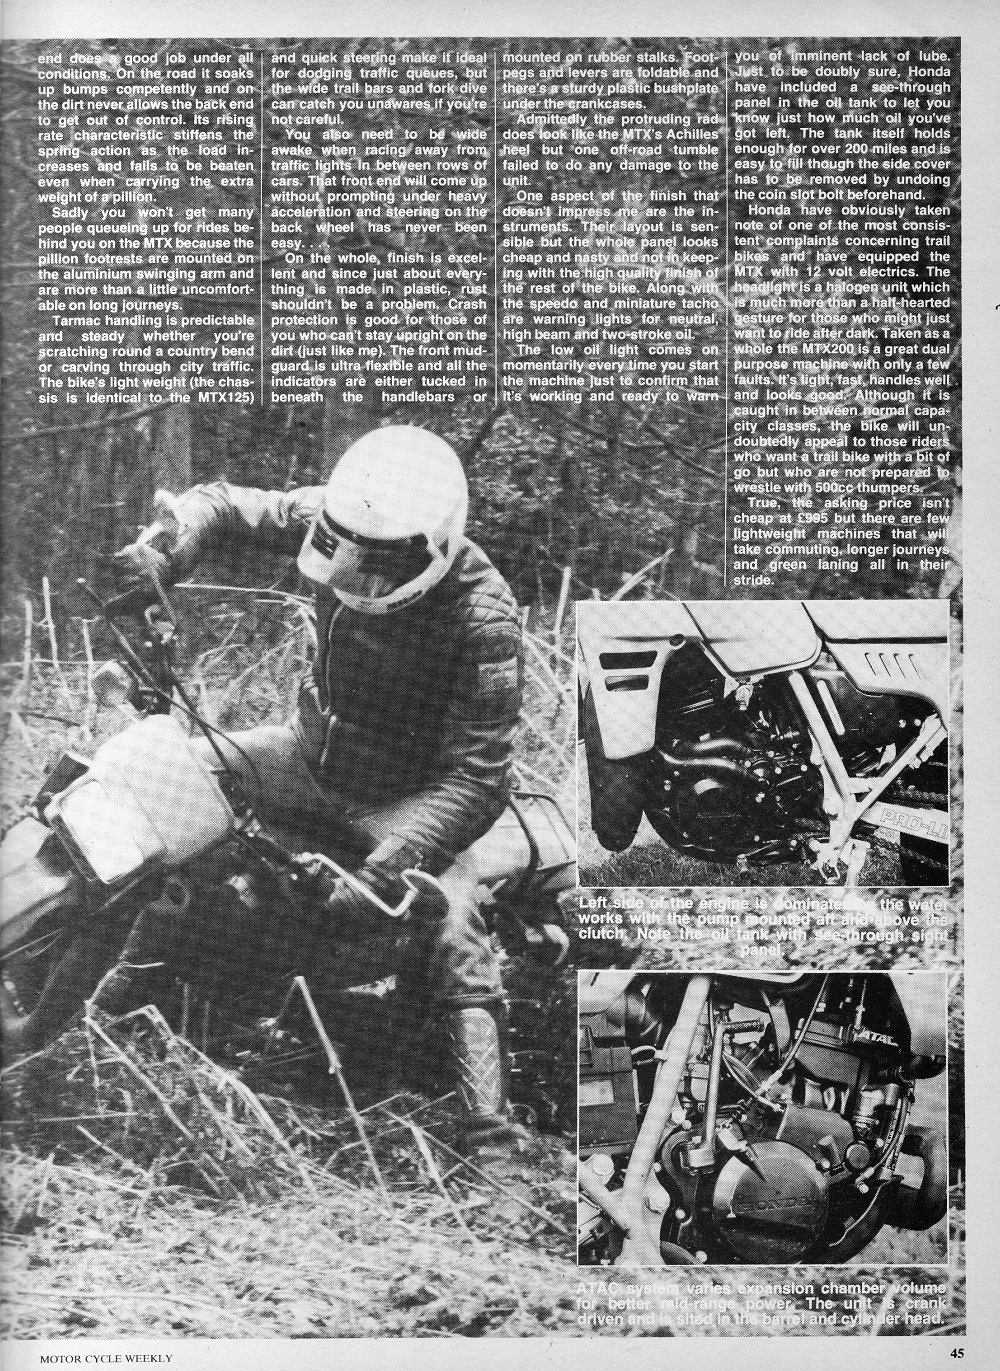 1983Honda MTX200 road test.4.jpg